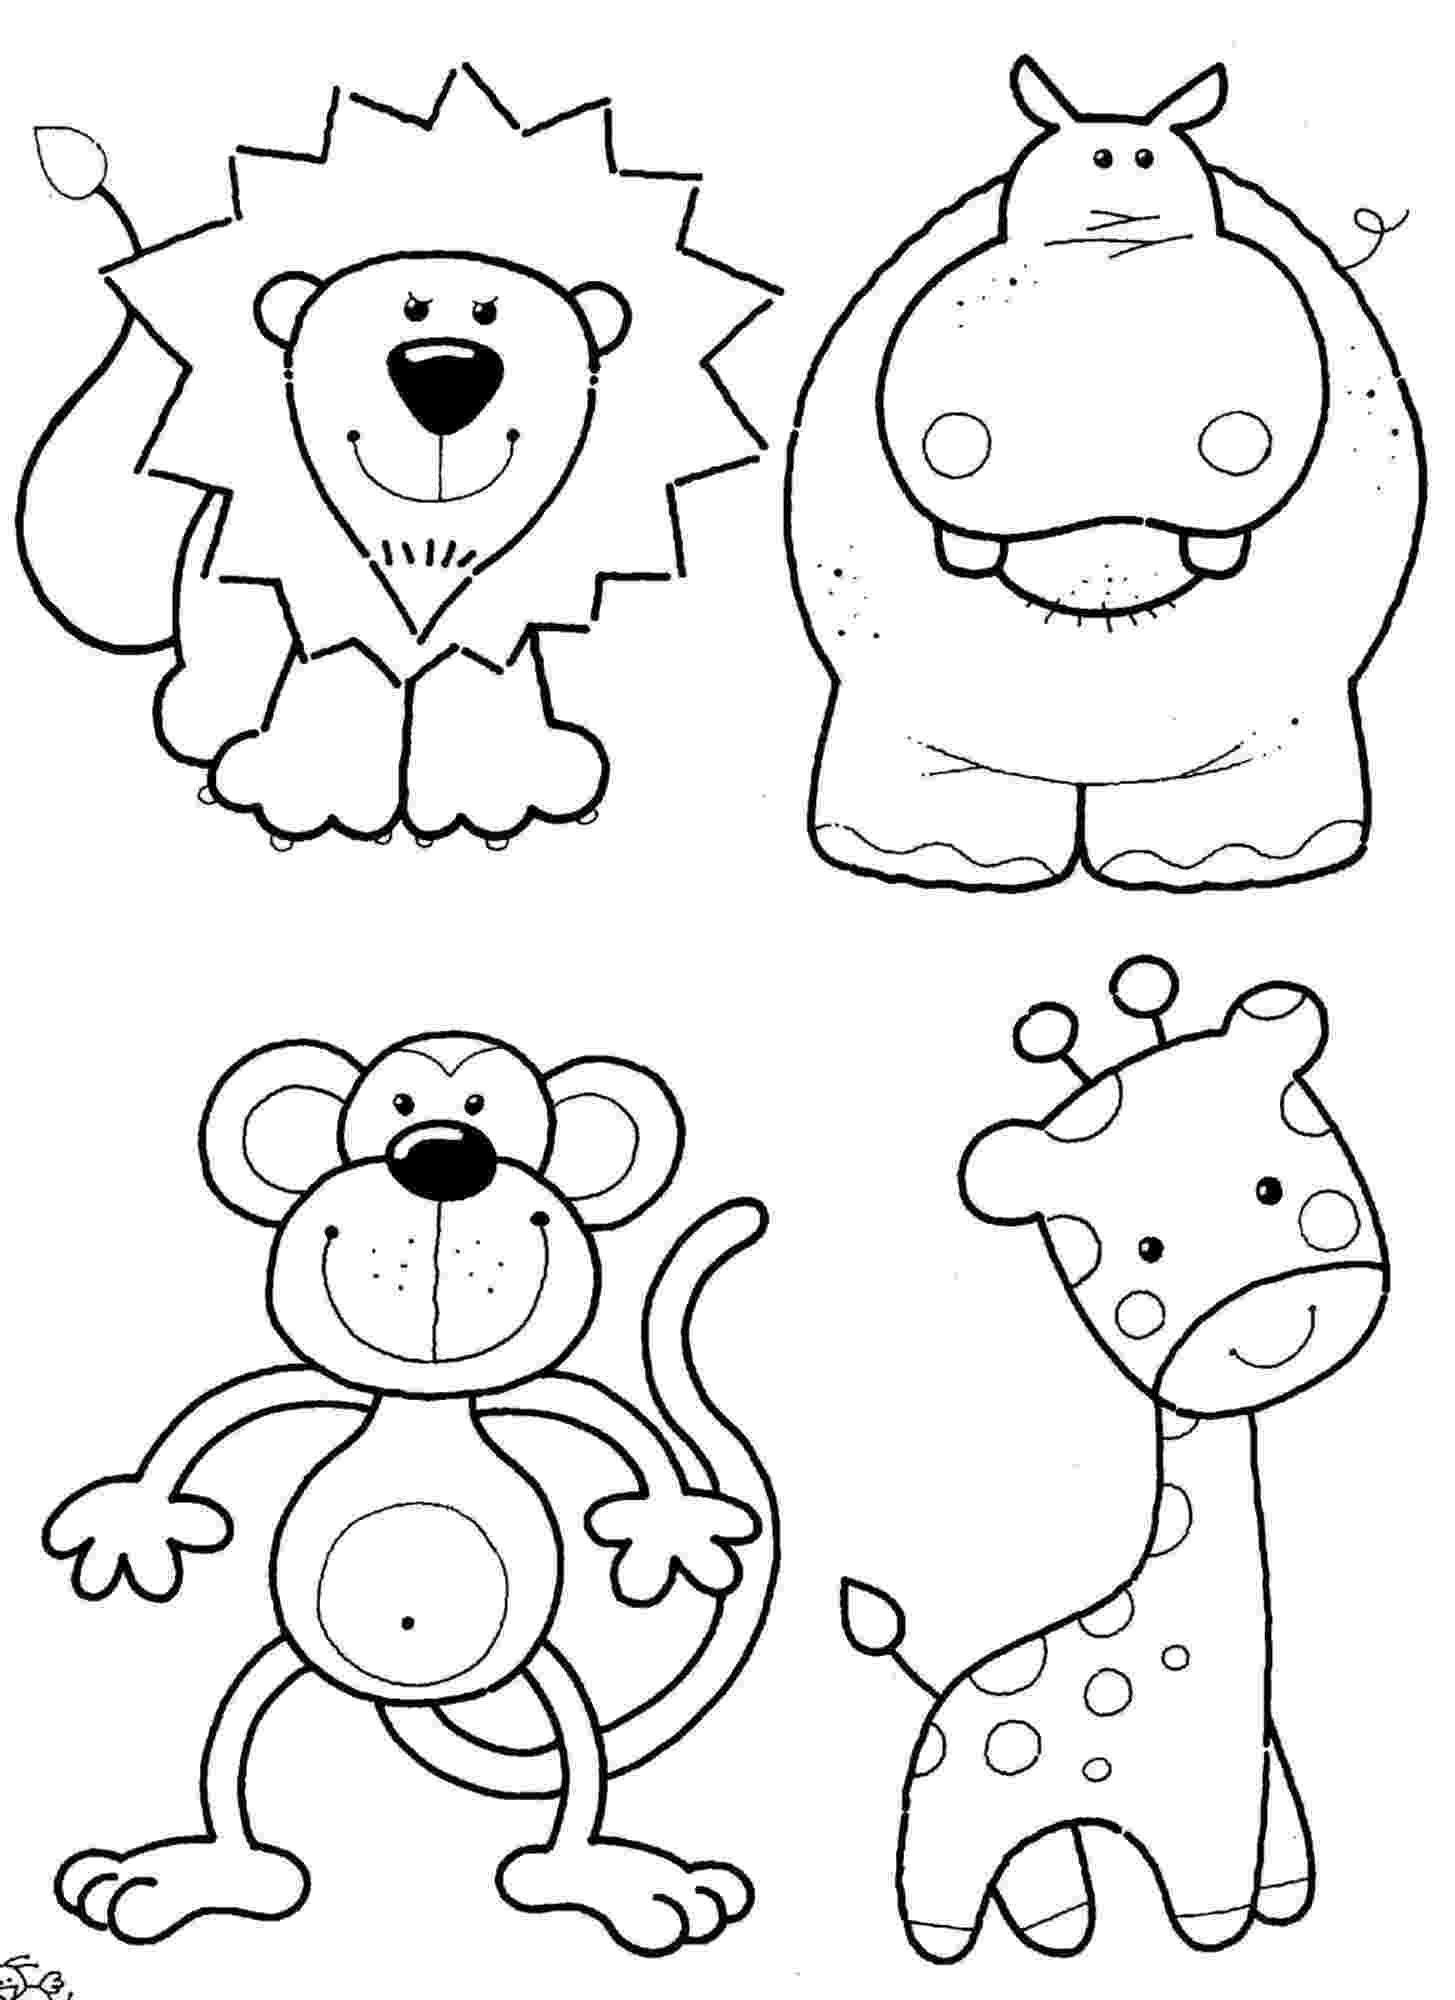 animals coloring book pages adult coloring pages animals best coloring pages for kids book animals coloring pages